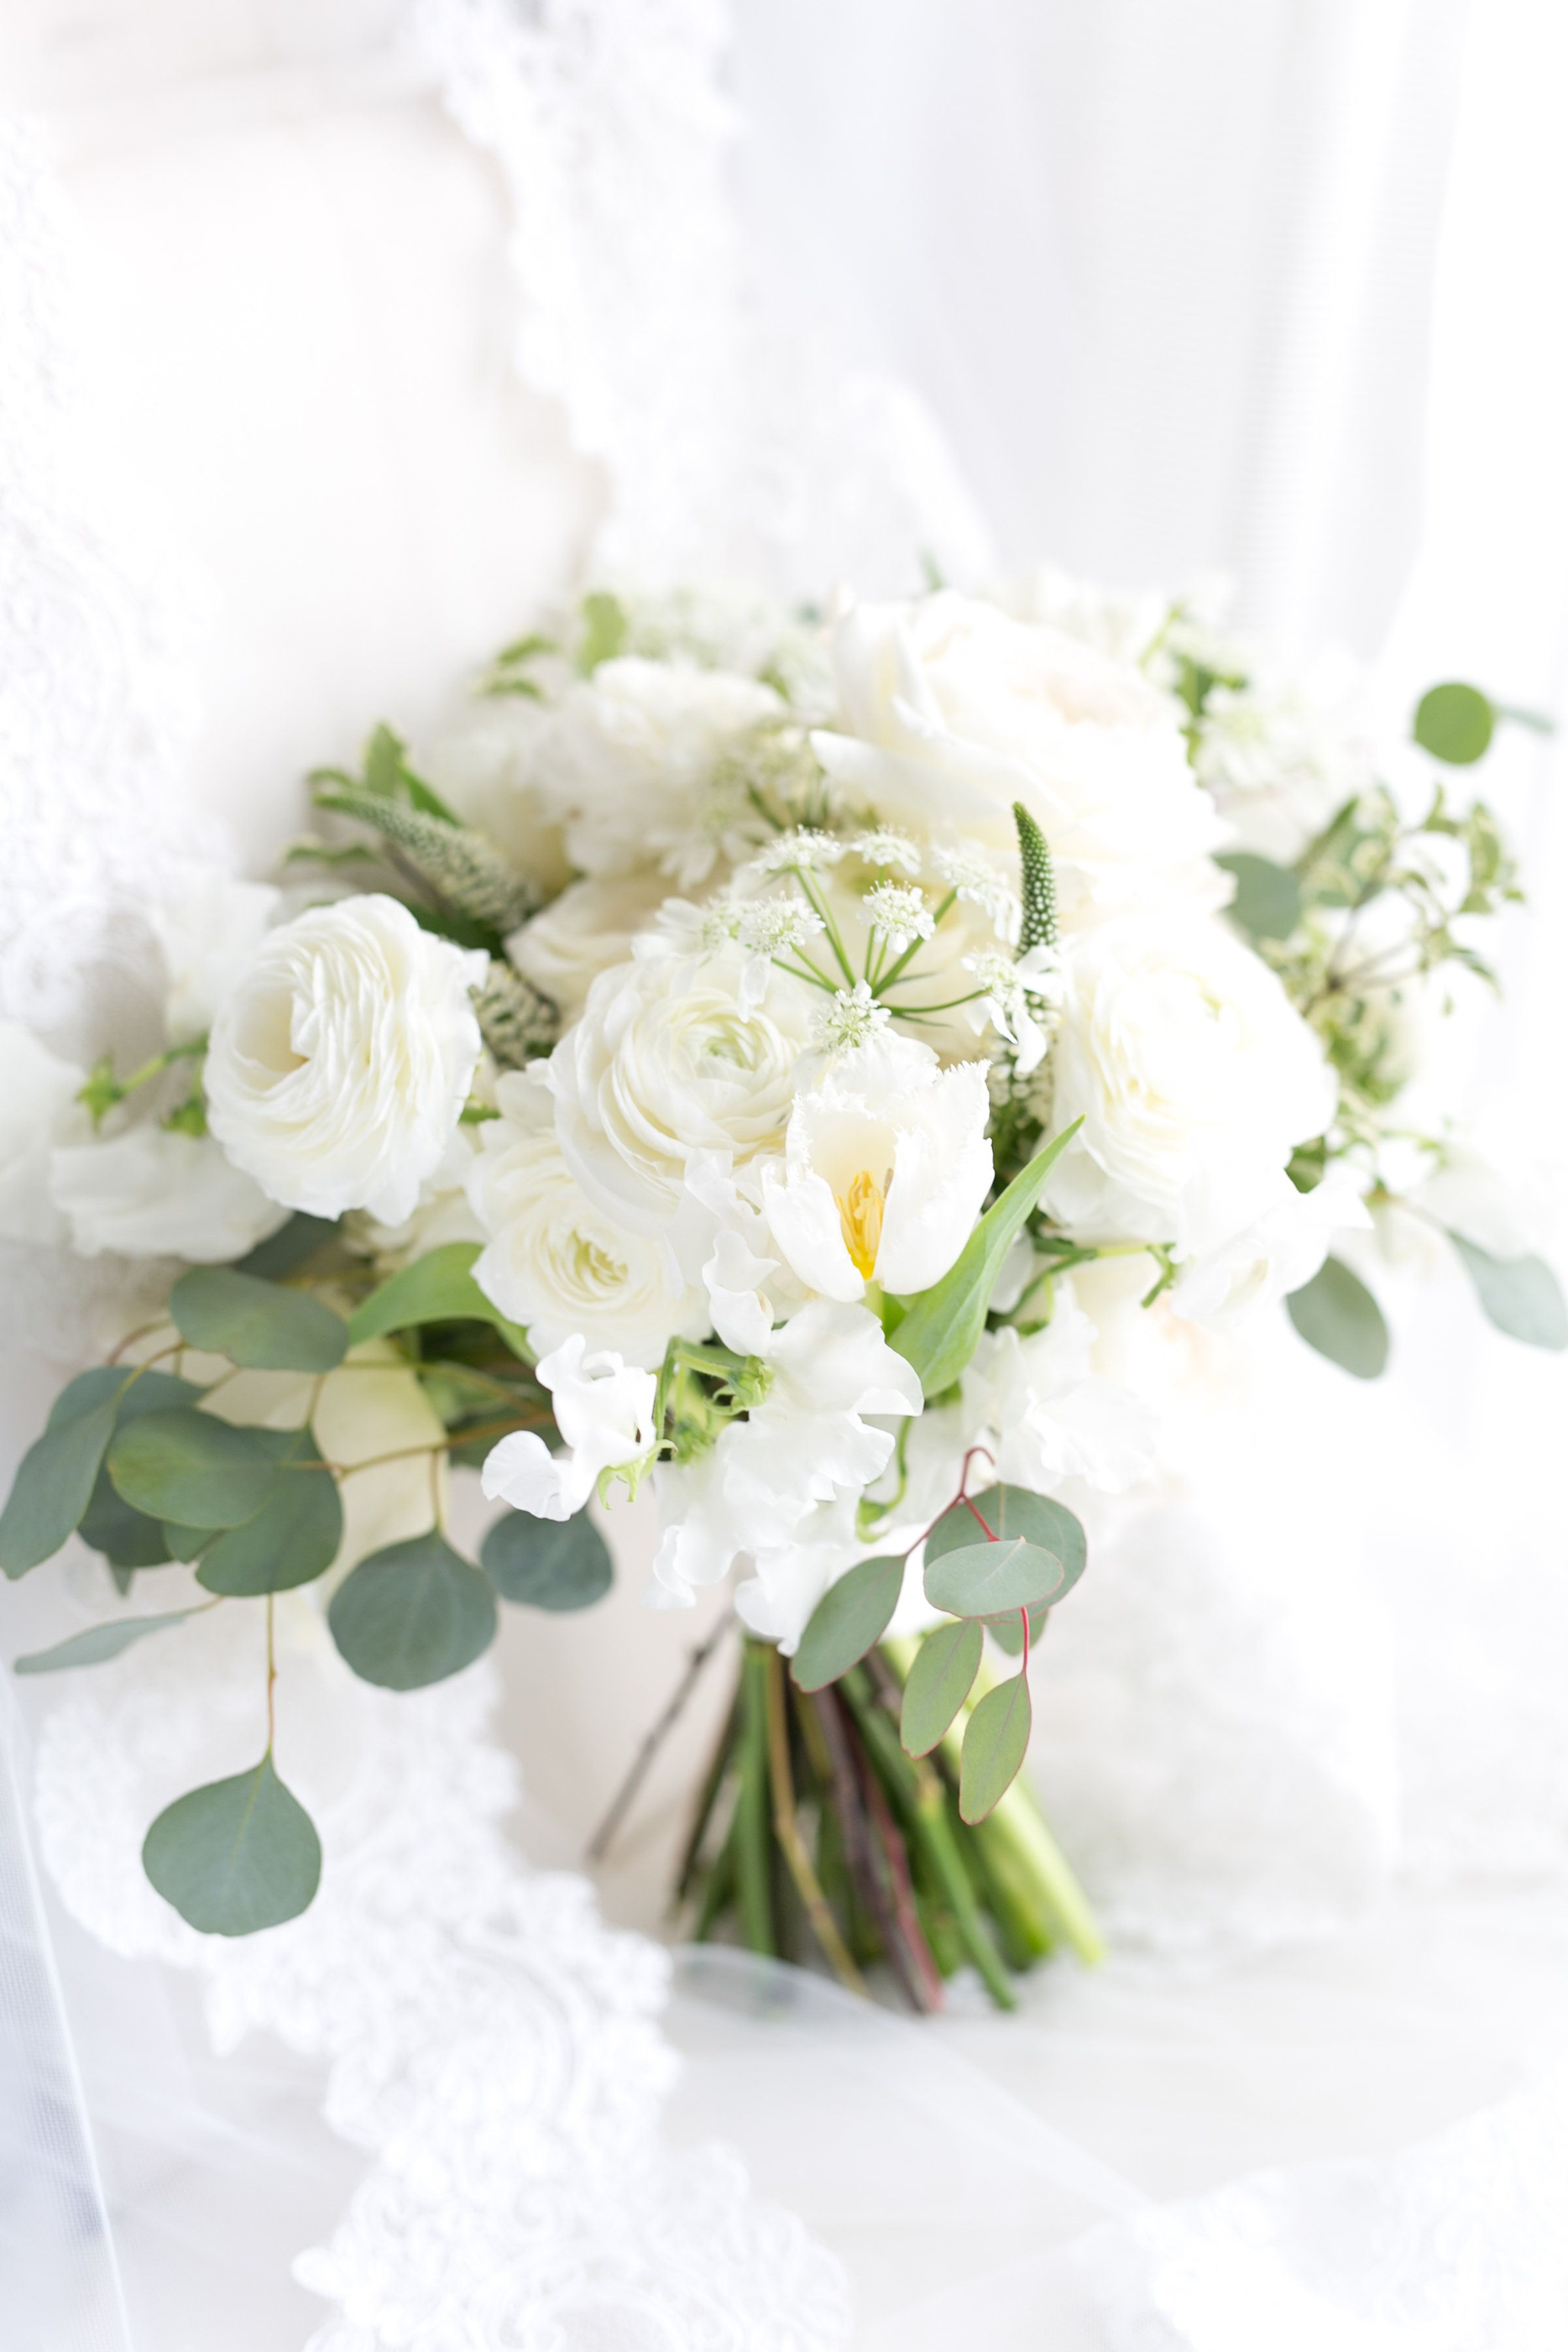 Springtime Classic And Lush All White Bridal Bouquet Of White